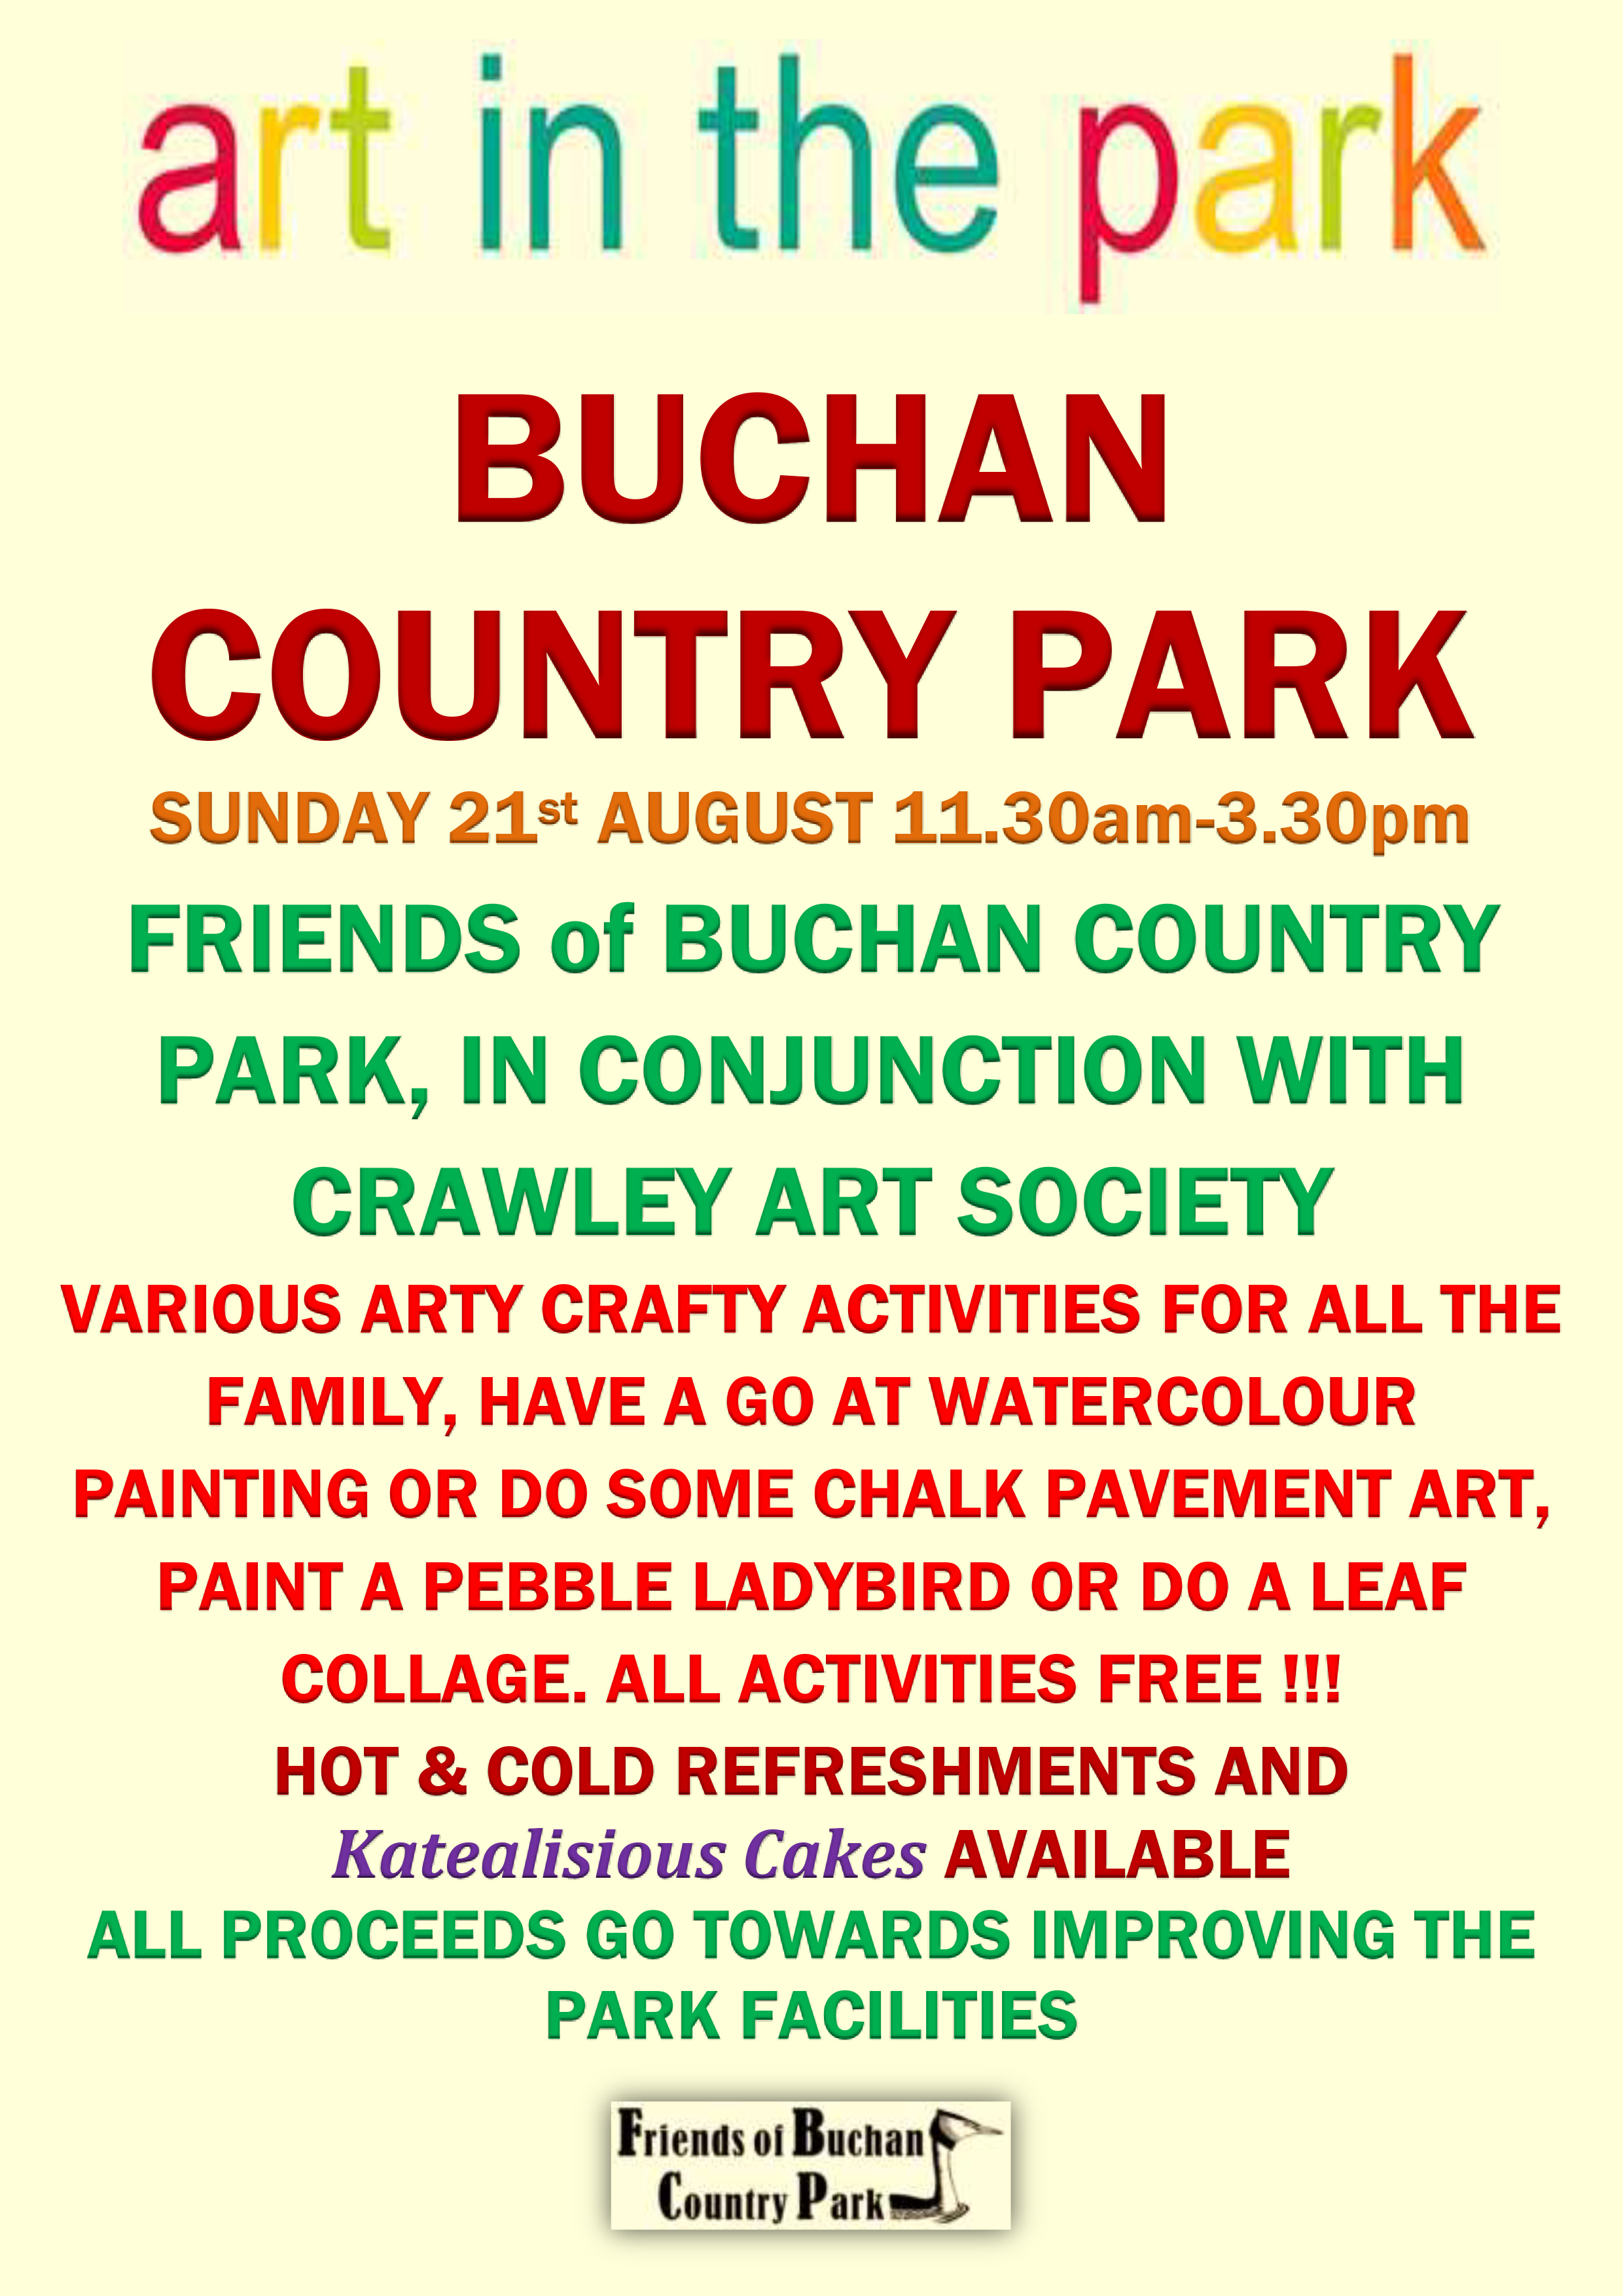 Friends Of Buchan Country Park Art In The Park 2016 Poster